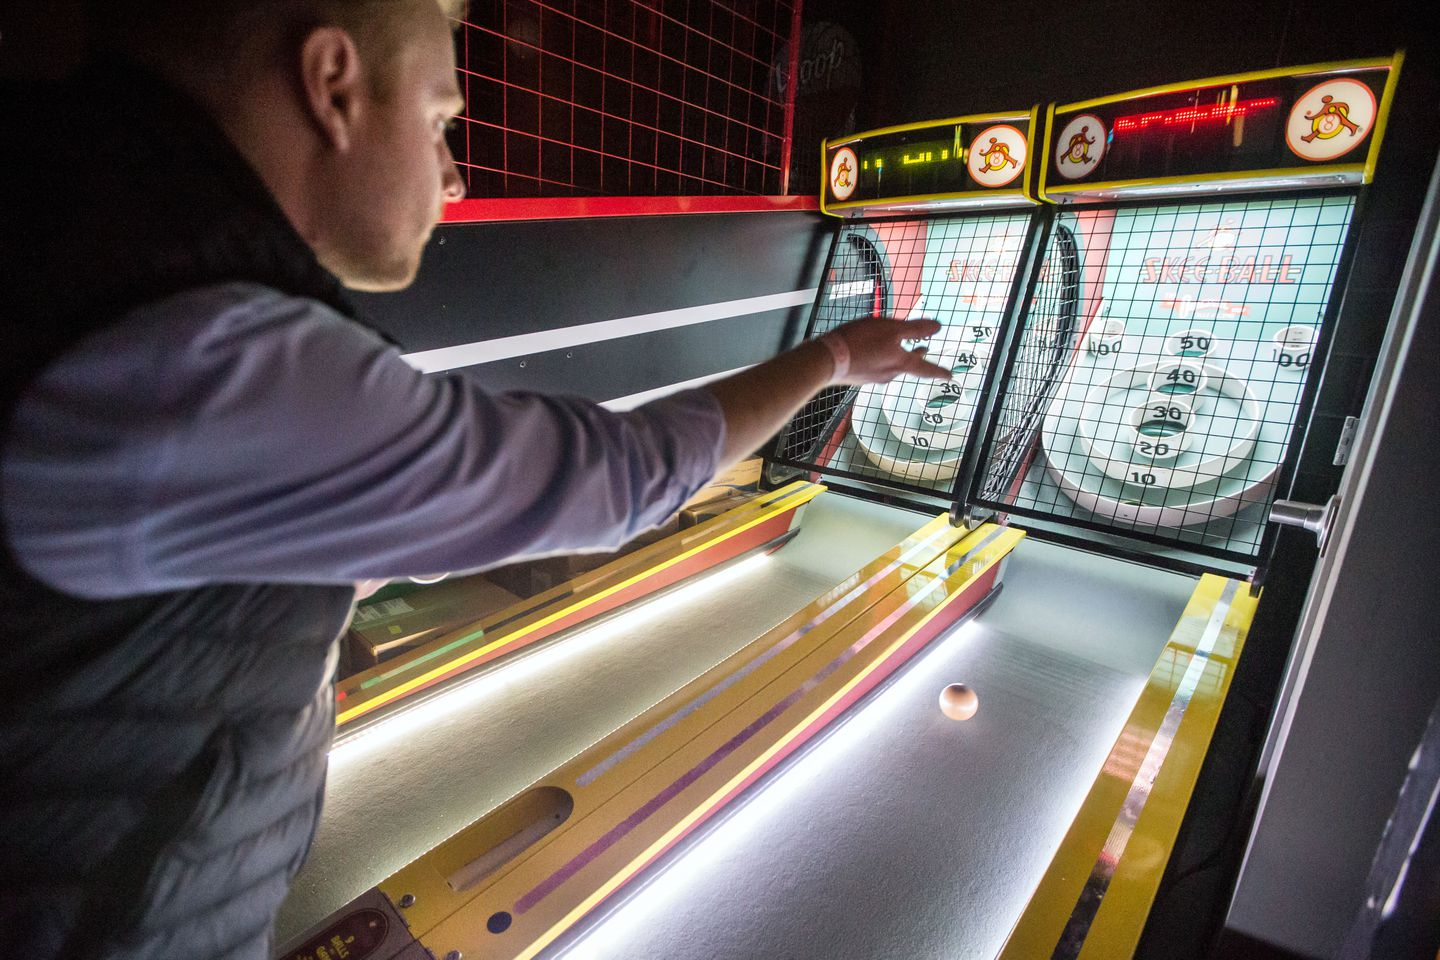 Skee-Ball is one of the games customers can play at A4cade in Cambridge.